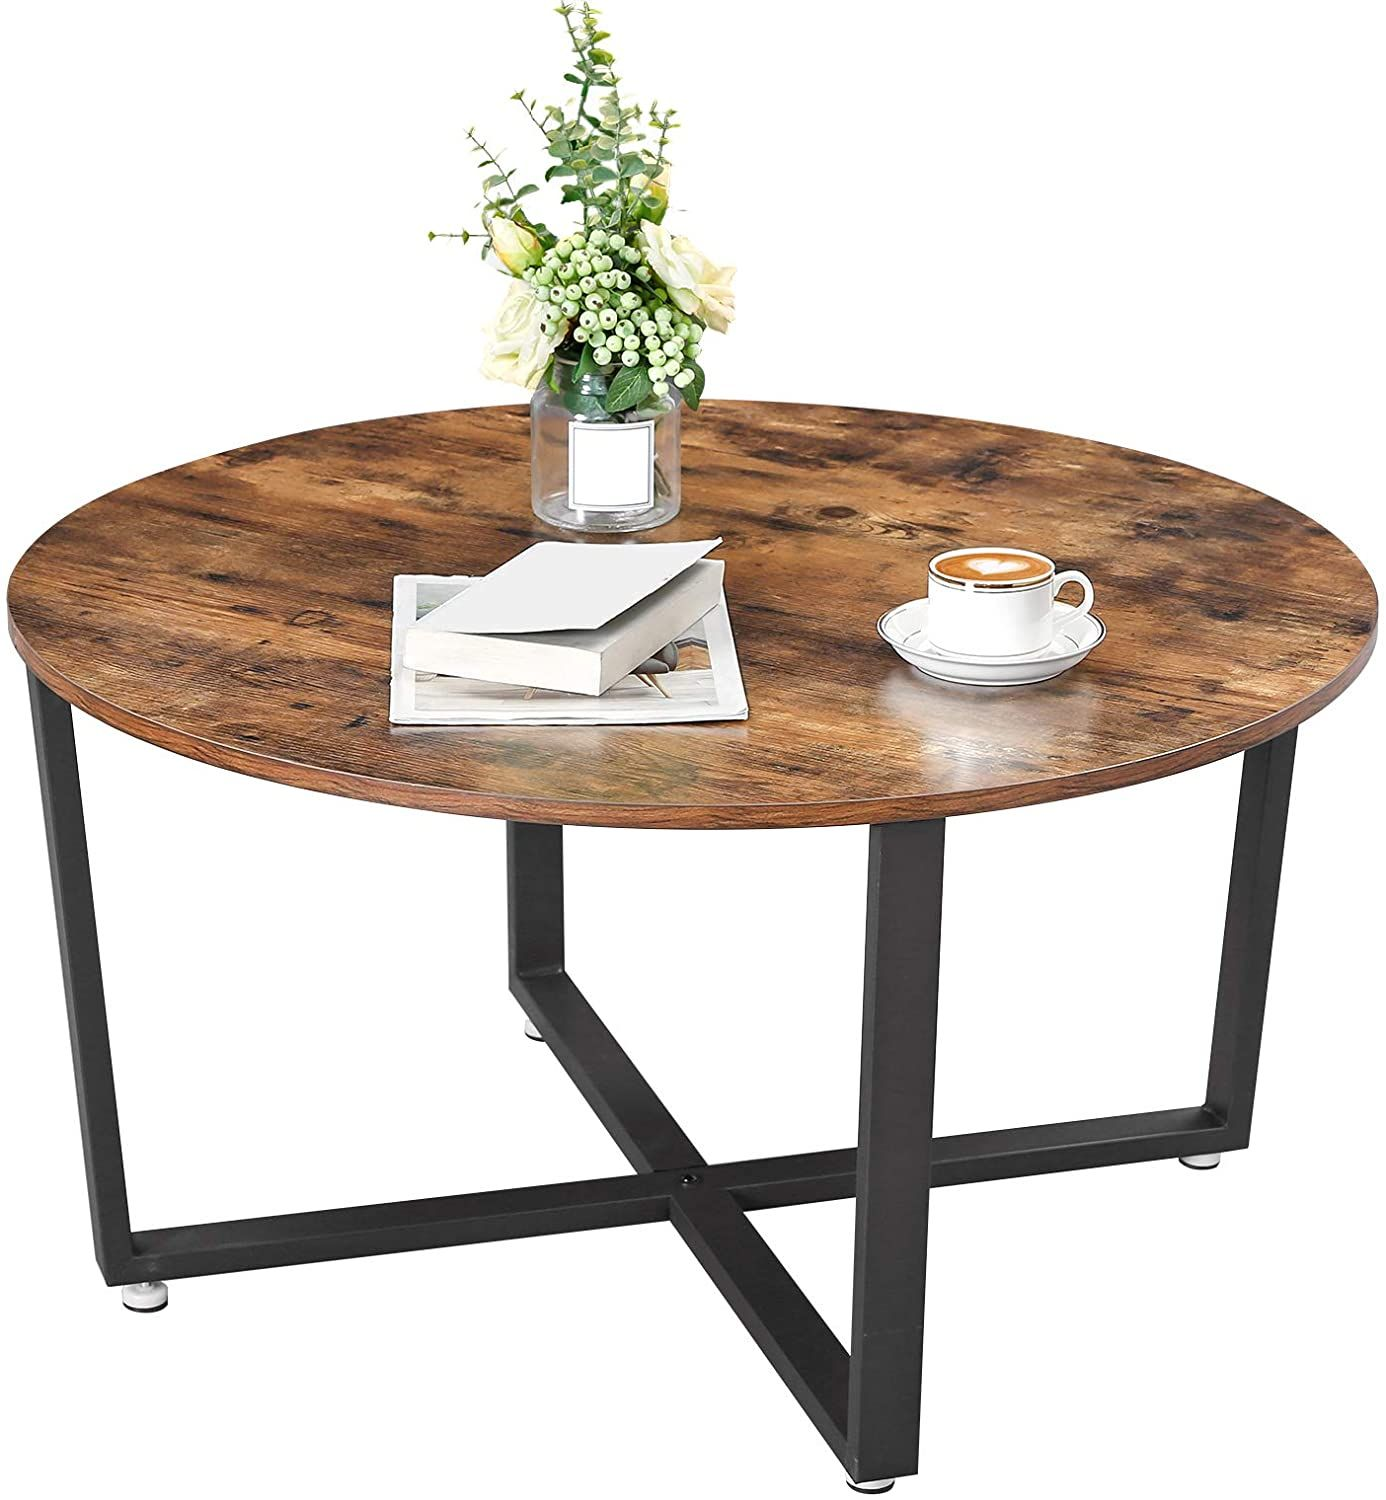 Ryan Round Coffee Table Industrial Farmhouse Style In 2021 Coffee Table Round Coffee Table Round Wood Side Table [ 1500 x 1386 Pixel ]